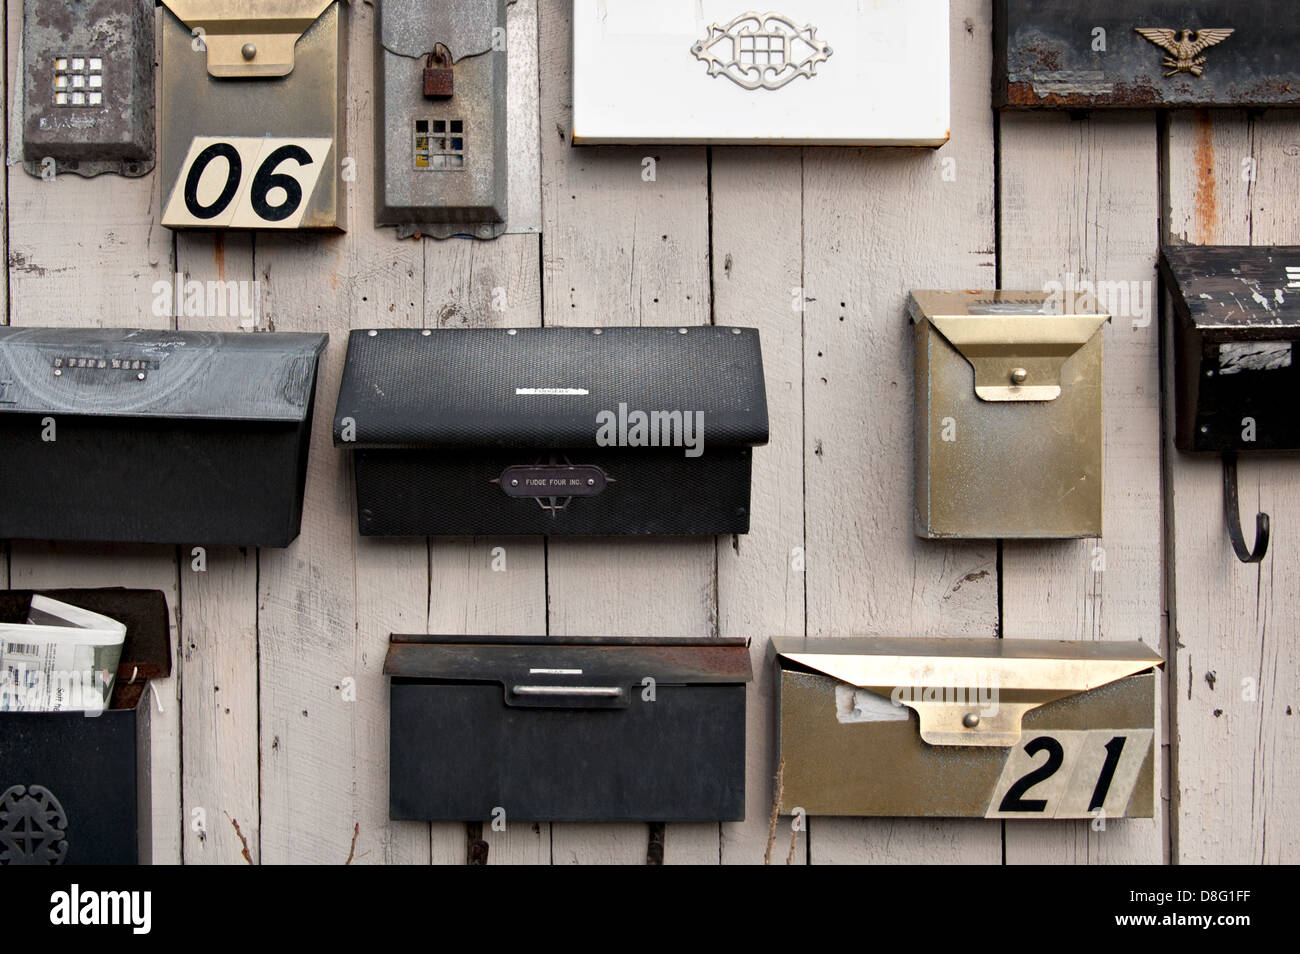 Many mailboxes on a wall. - Stock Image